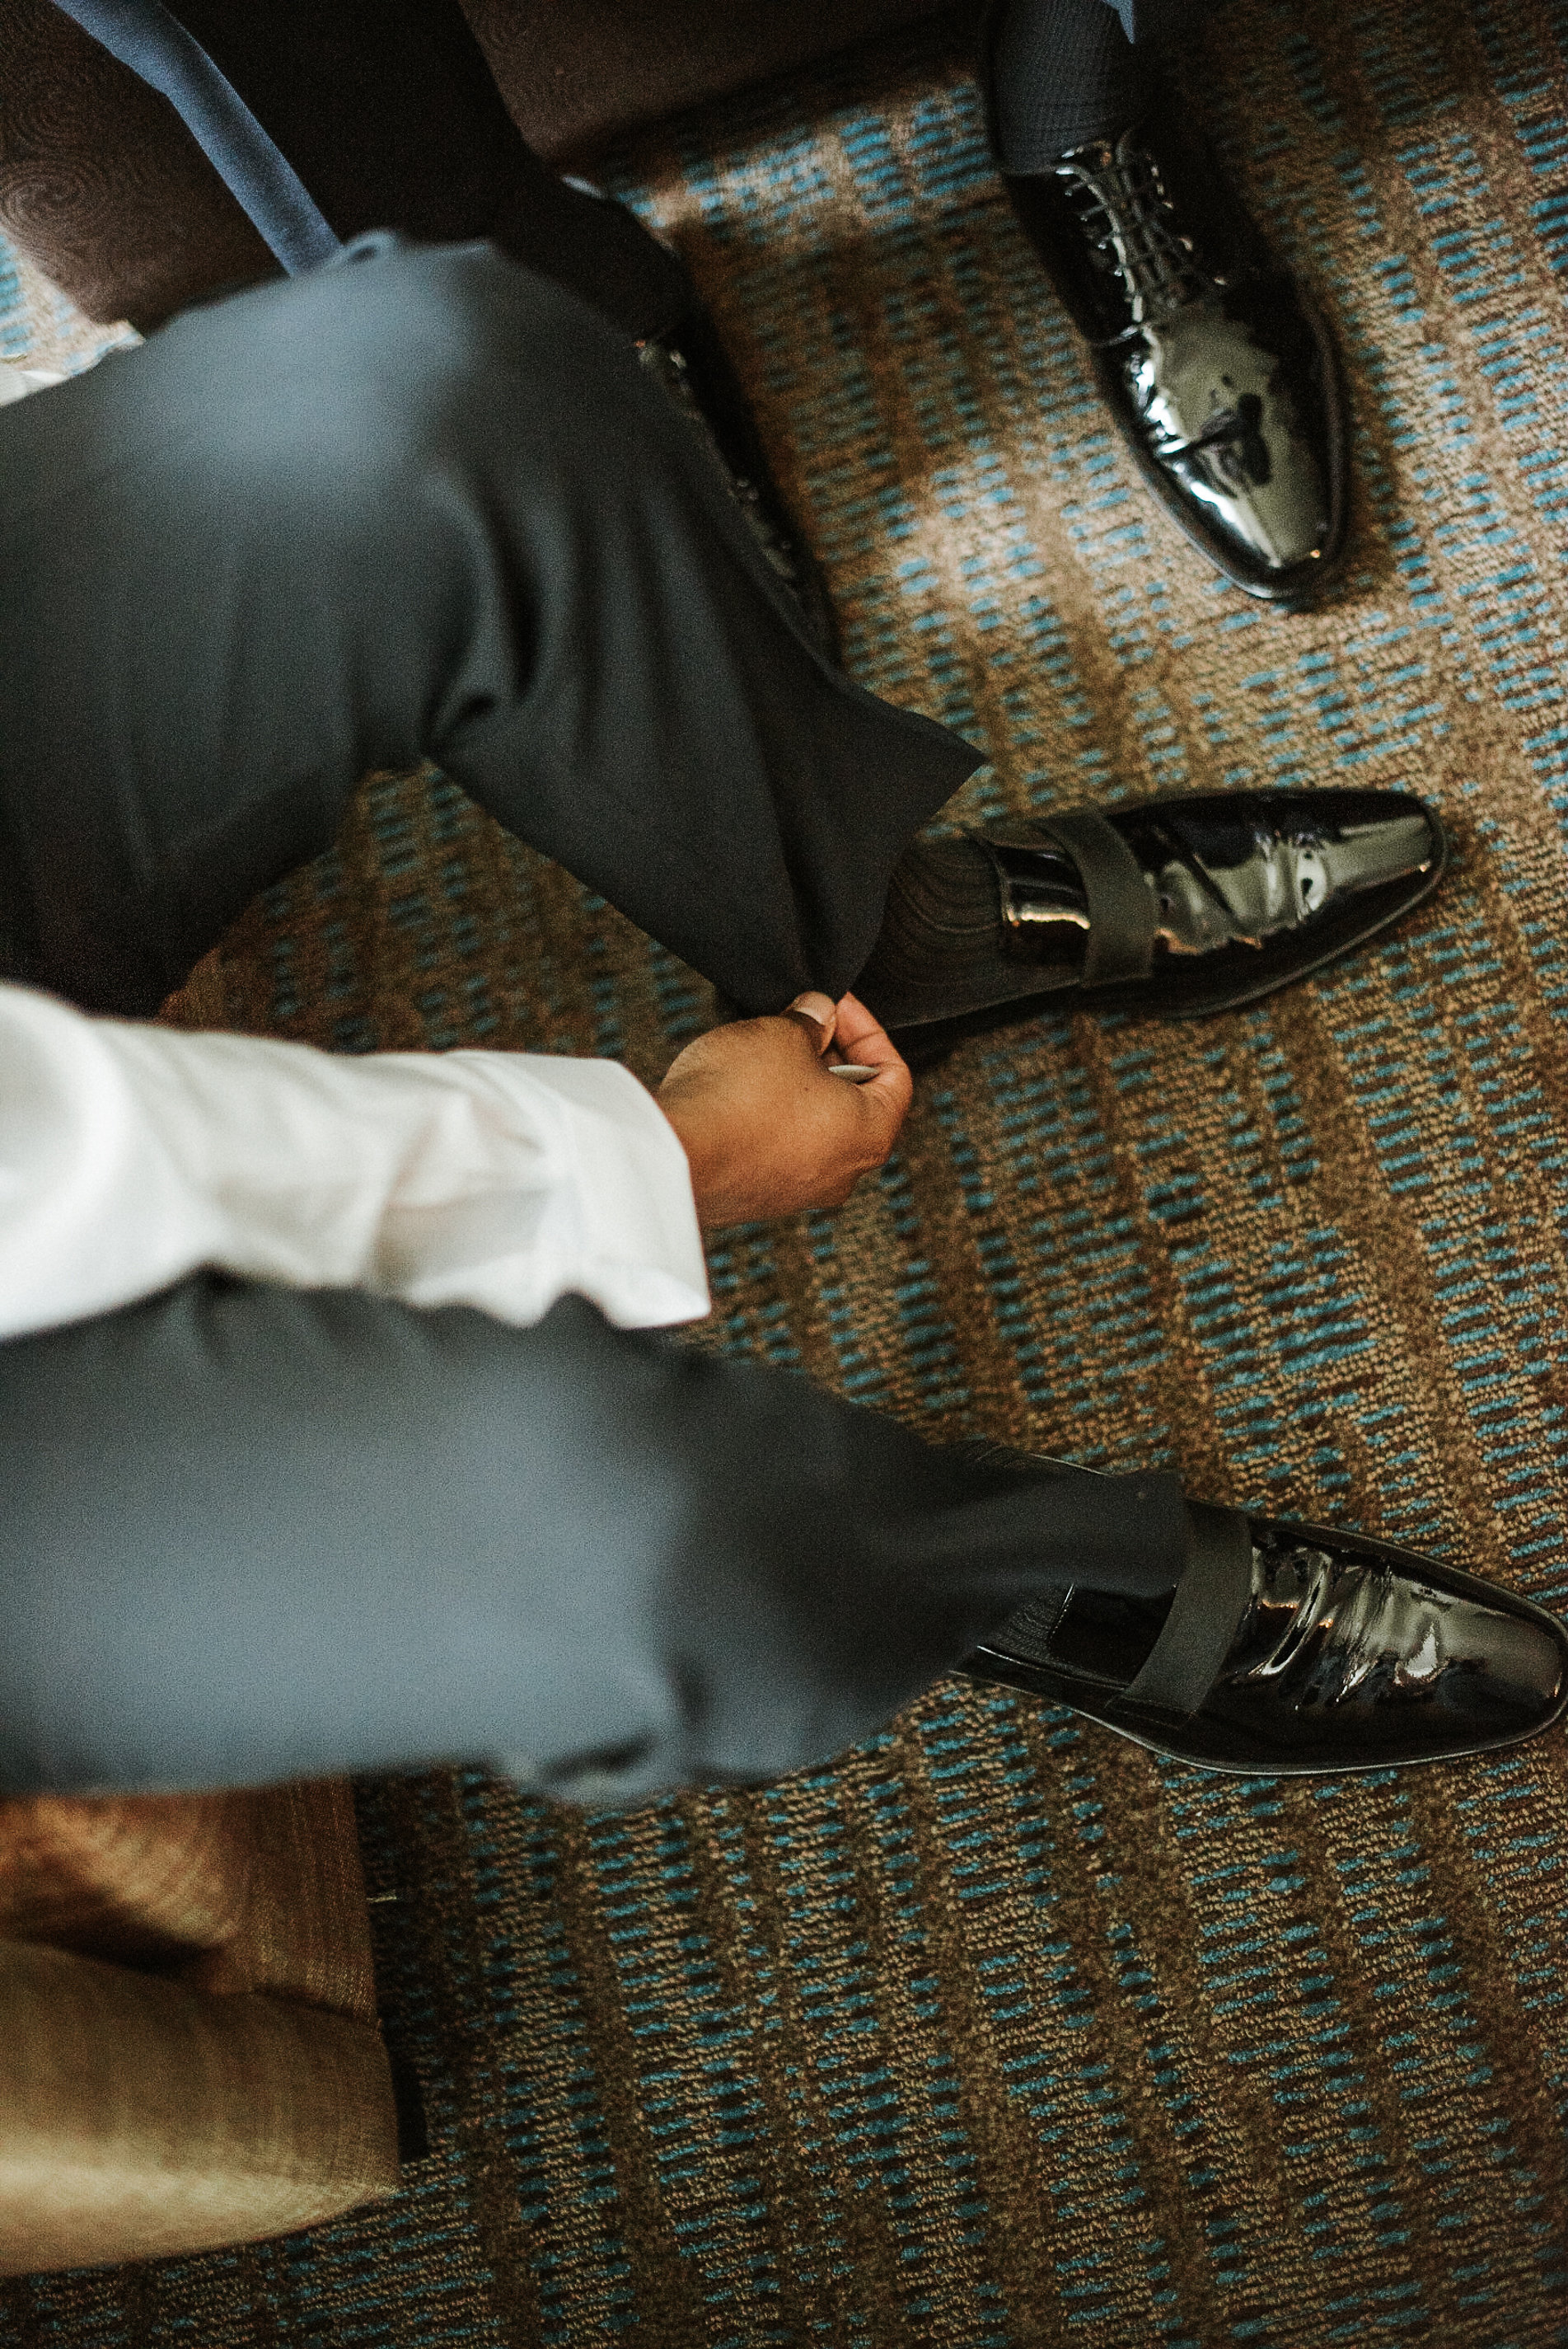 Groom's shoes from above